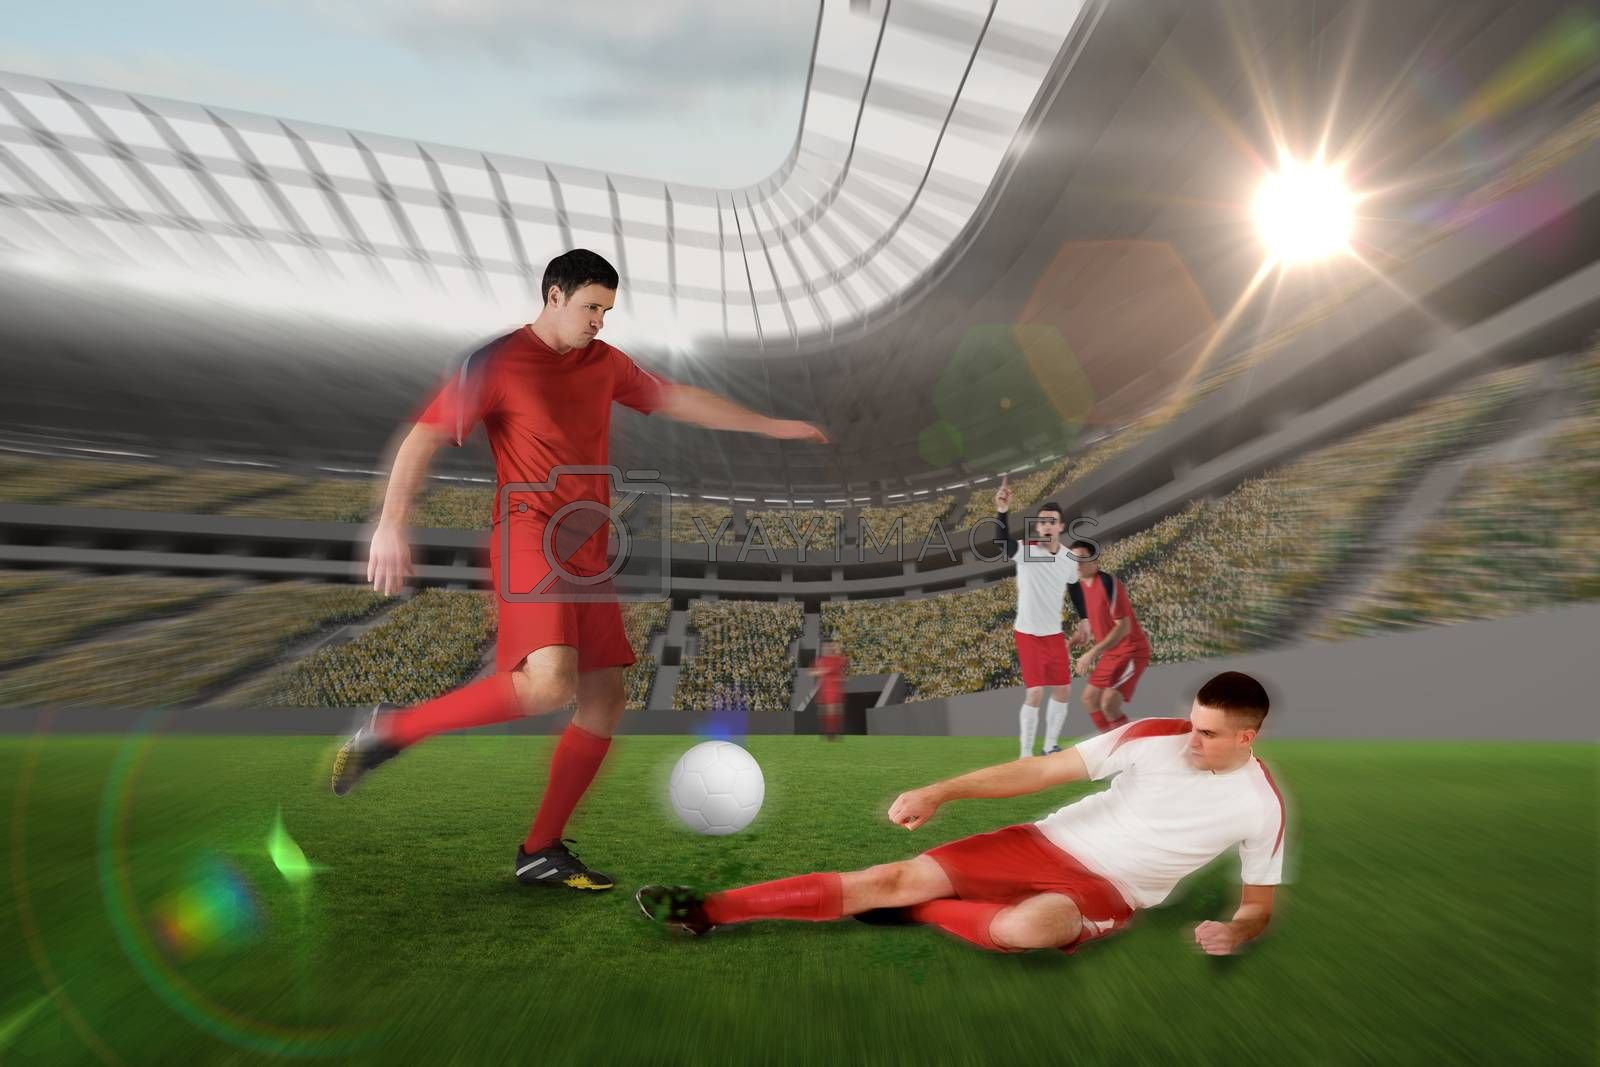 Football player in red kicking by Wavebreakmedia